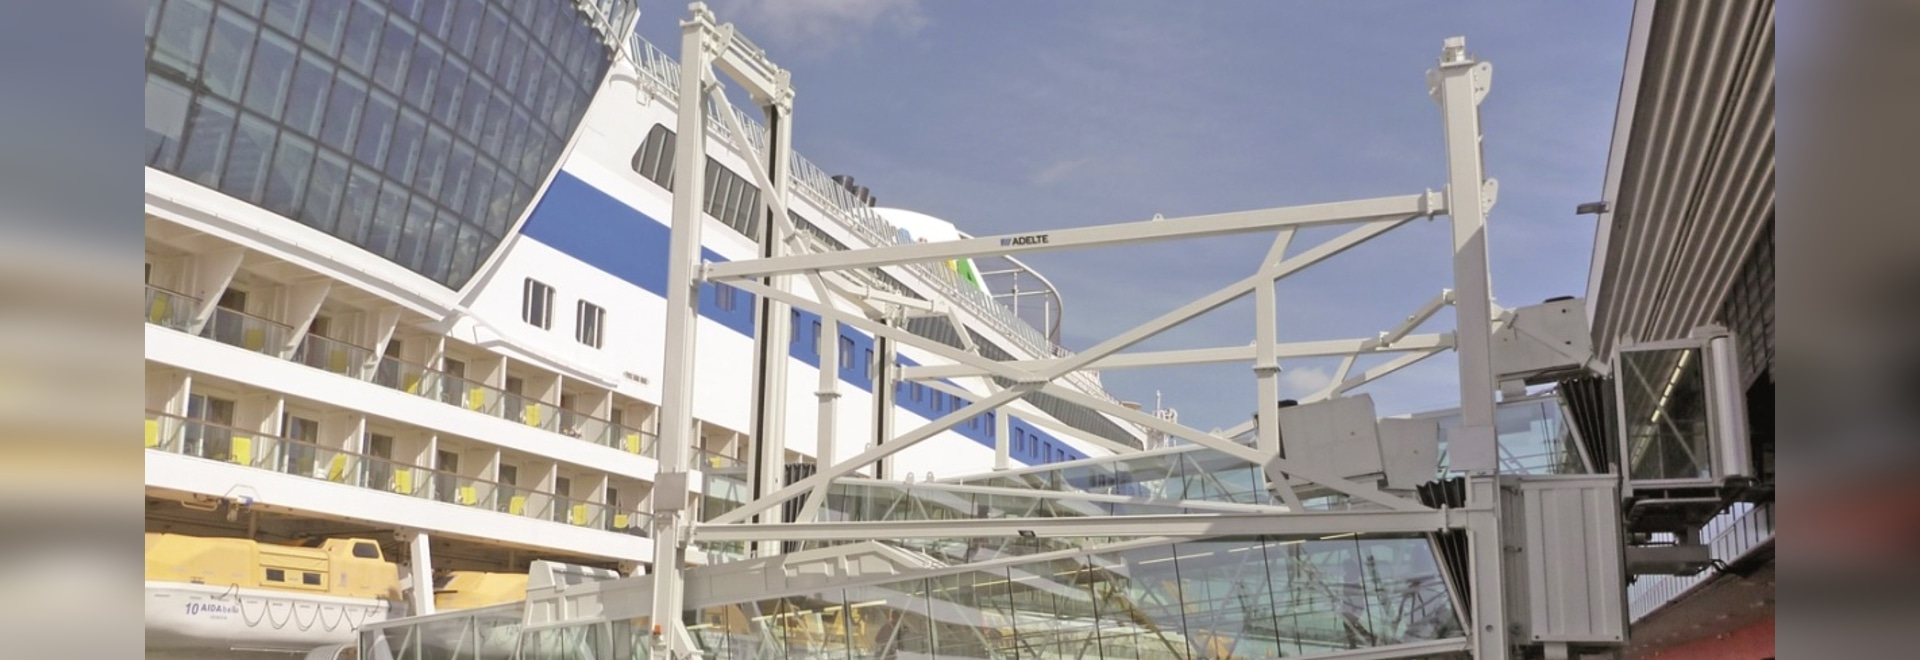 ADELTE's telescopic ramp can be converted into stairs thanks to electromechanical actuators